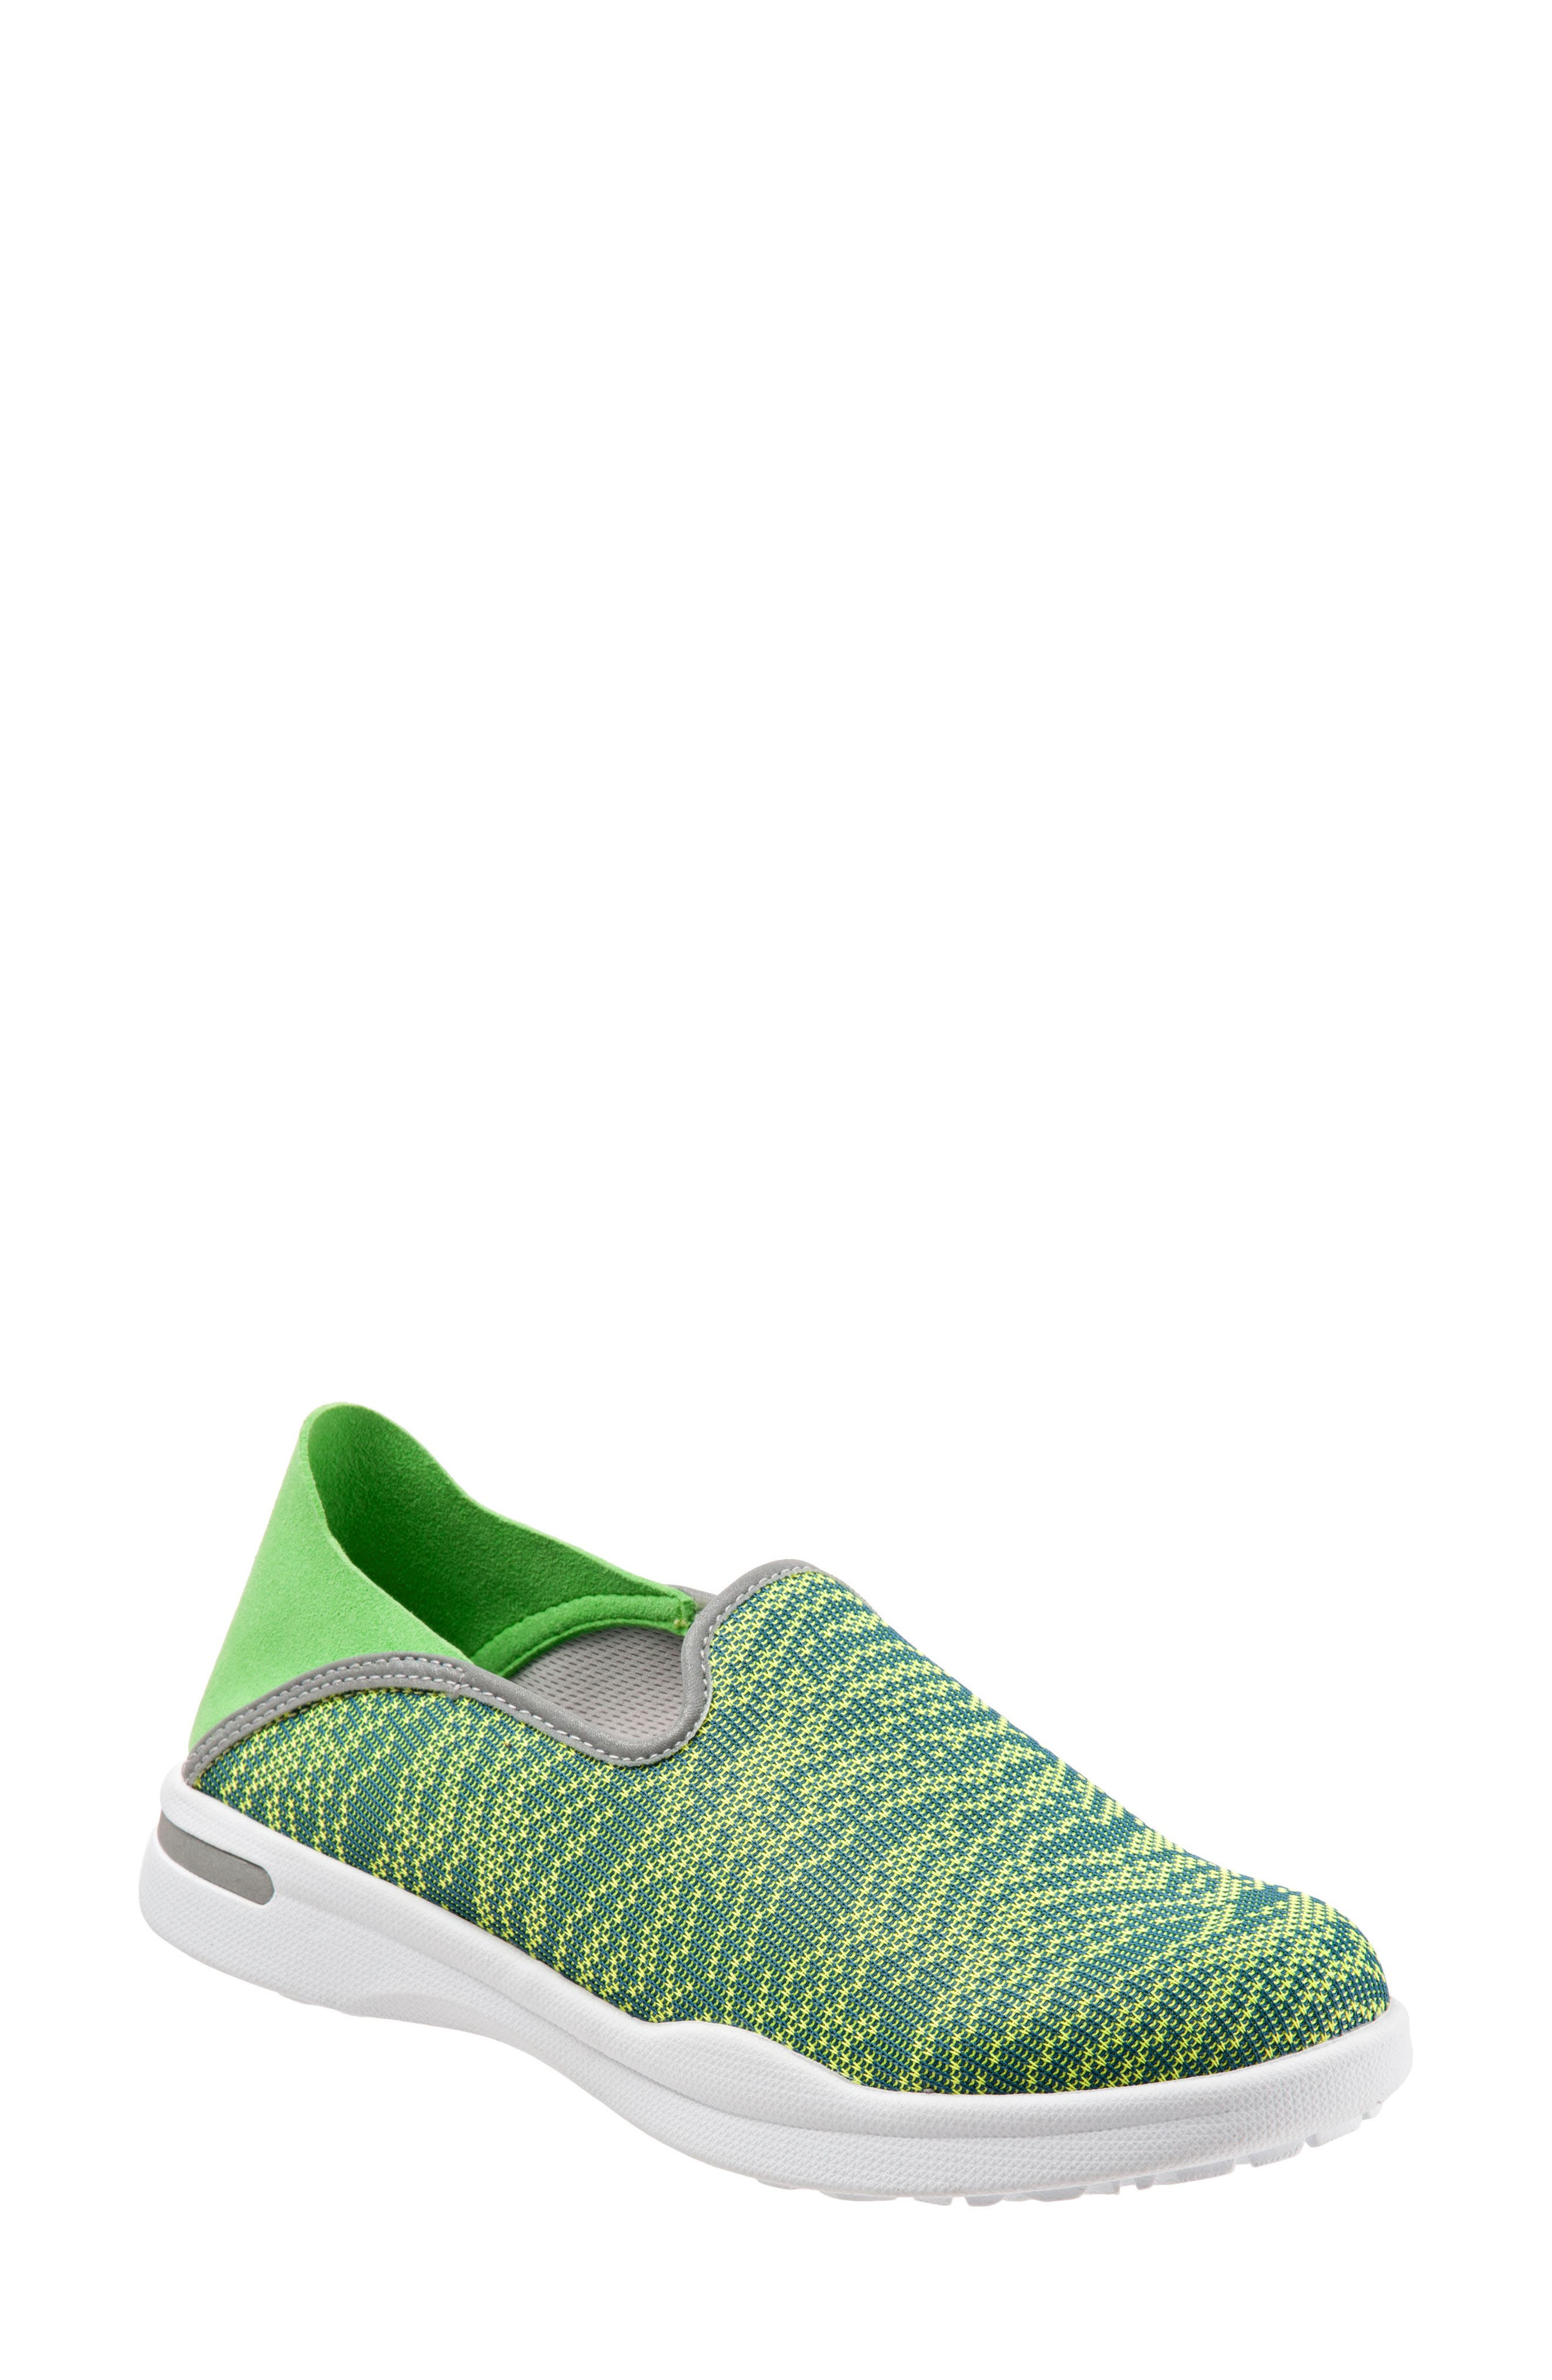 Convertible Slip-On Sneaker,                         Main,                         color, Green Fabric